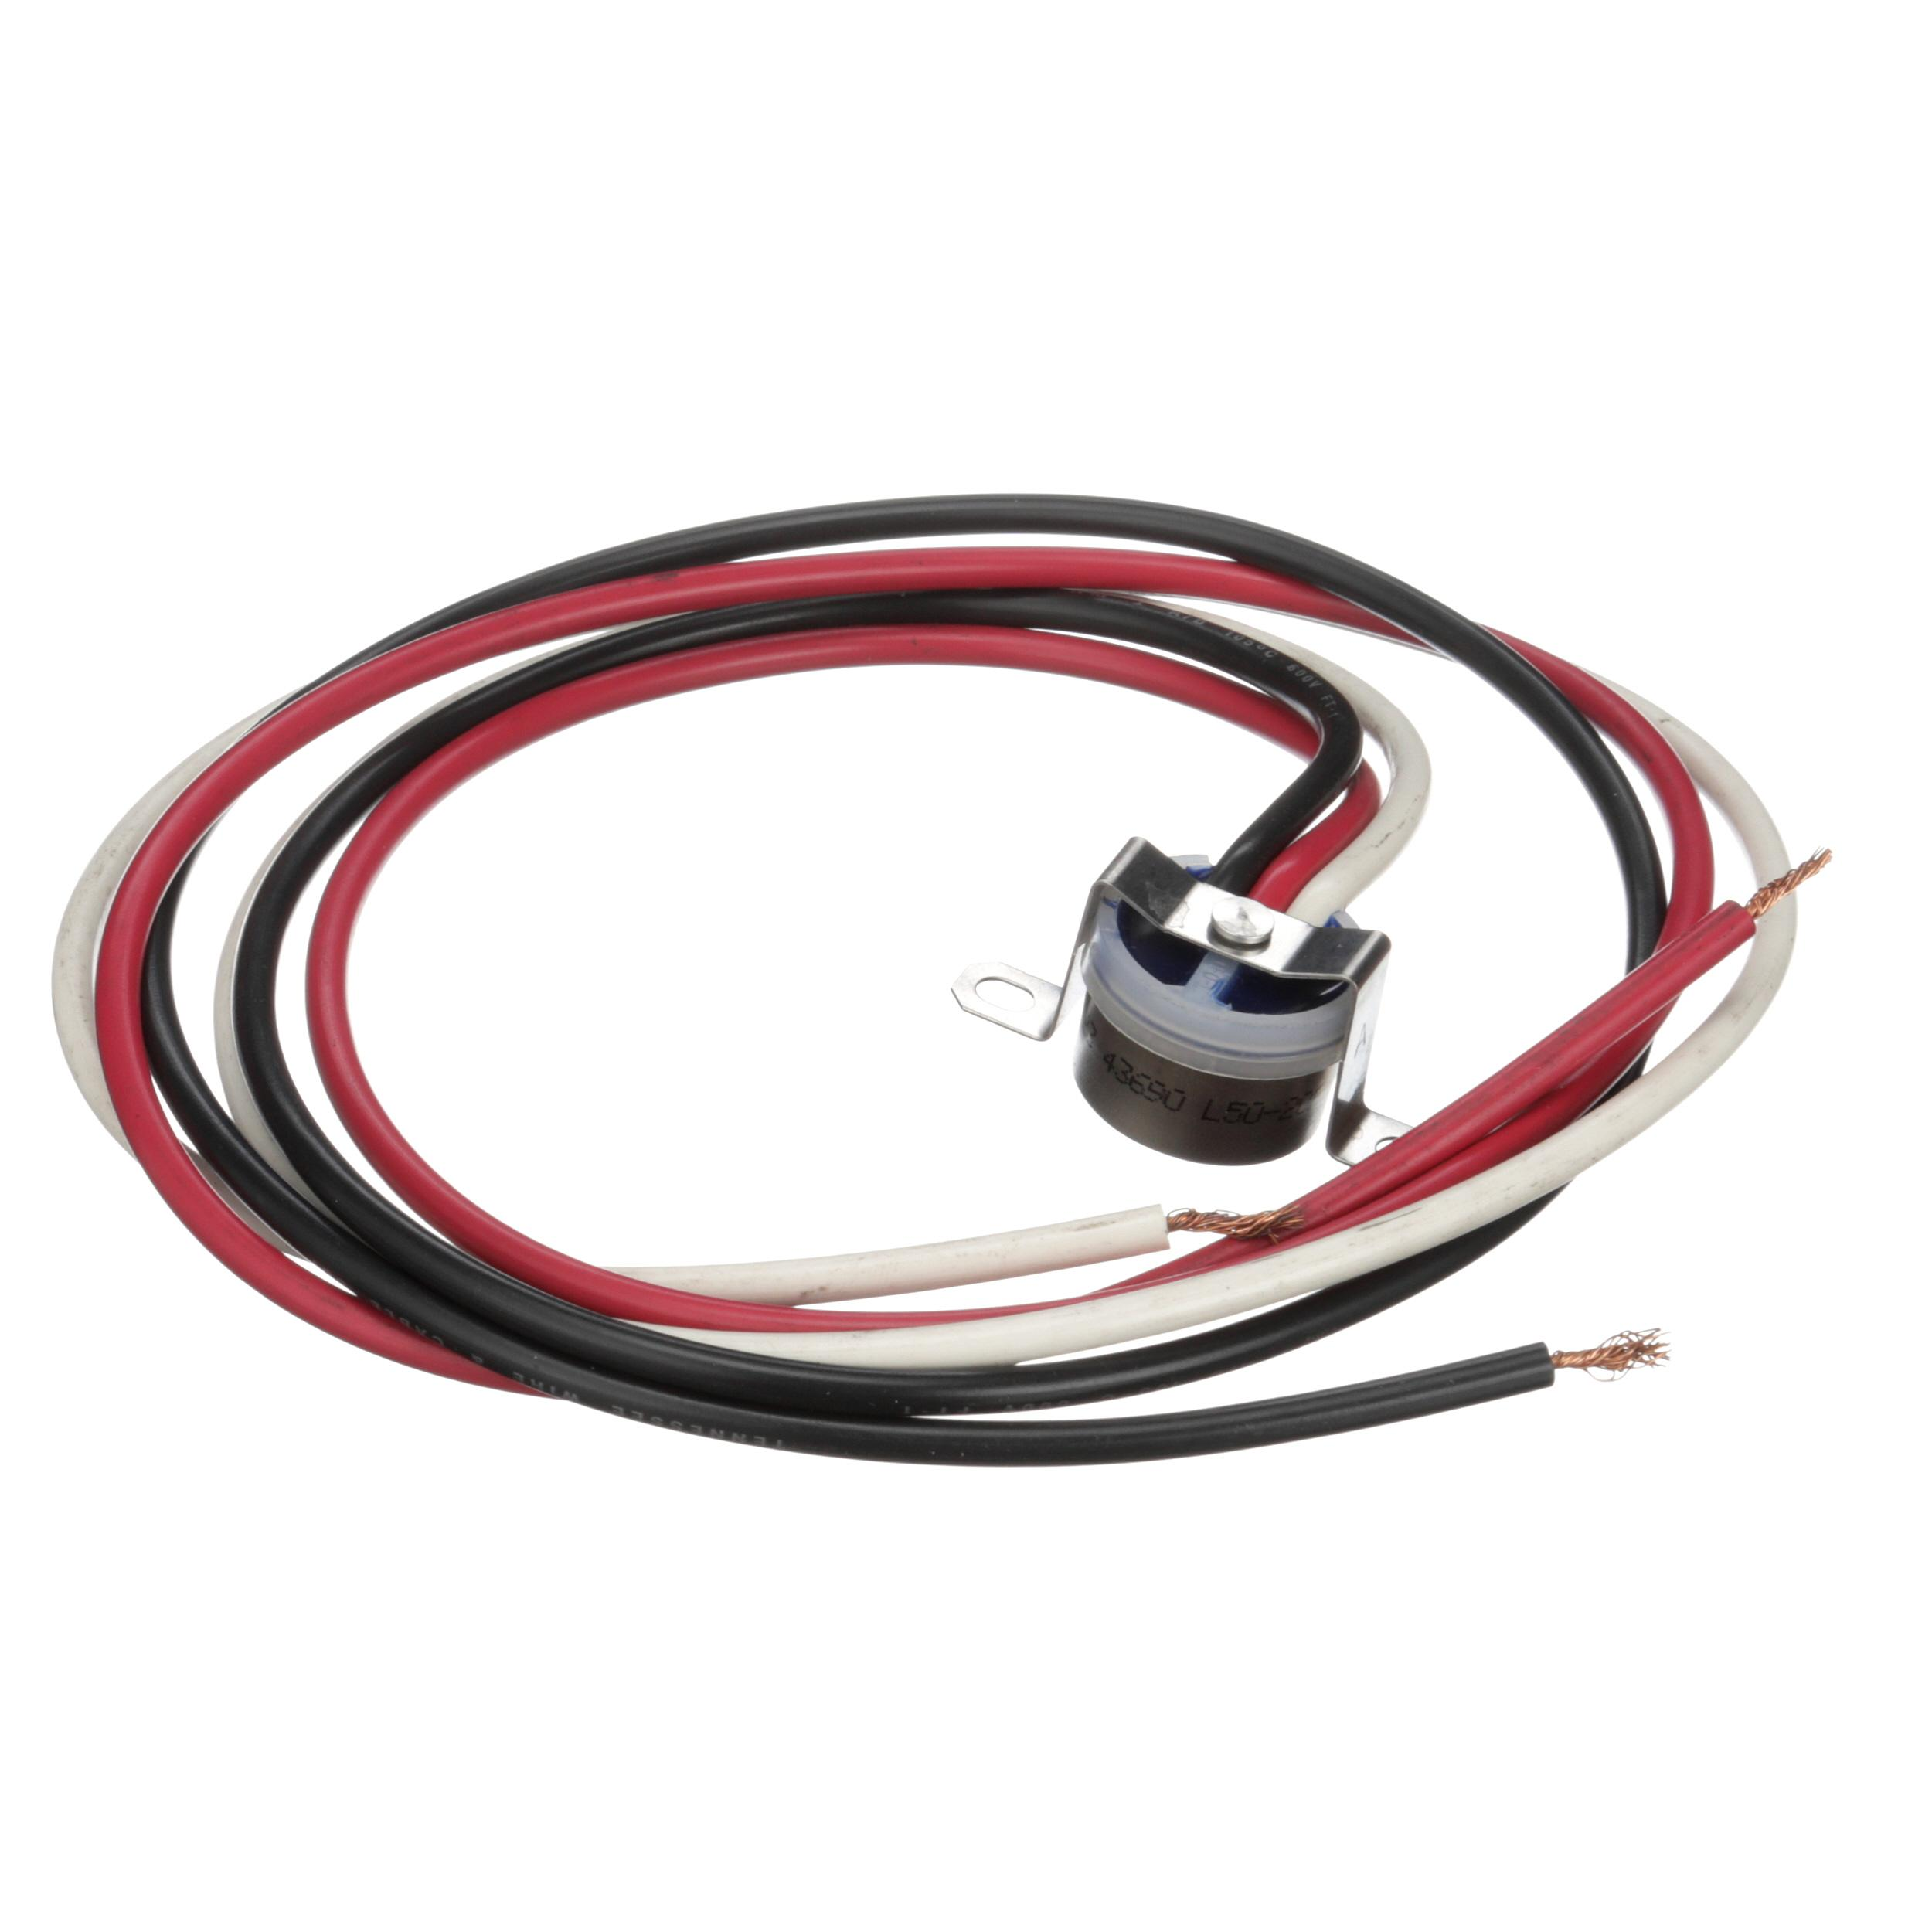 master bilt products fan delay term t stat nl 001781 3 wires red wiring black white n l [ 2500 x 2500 Pixel ]